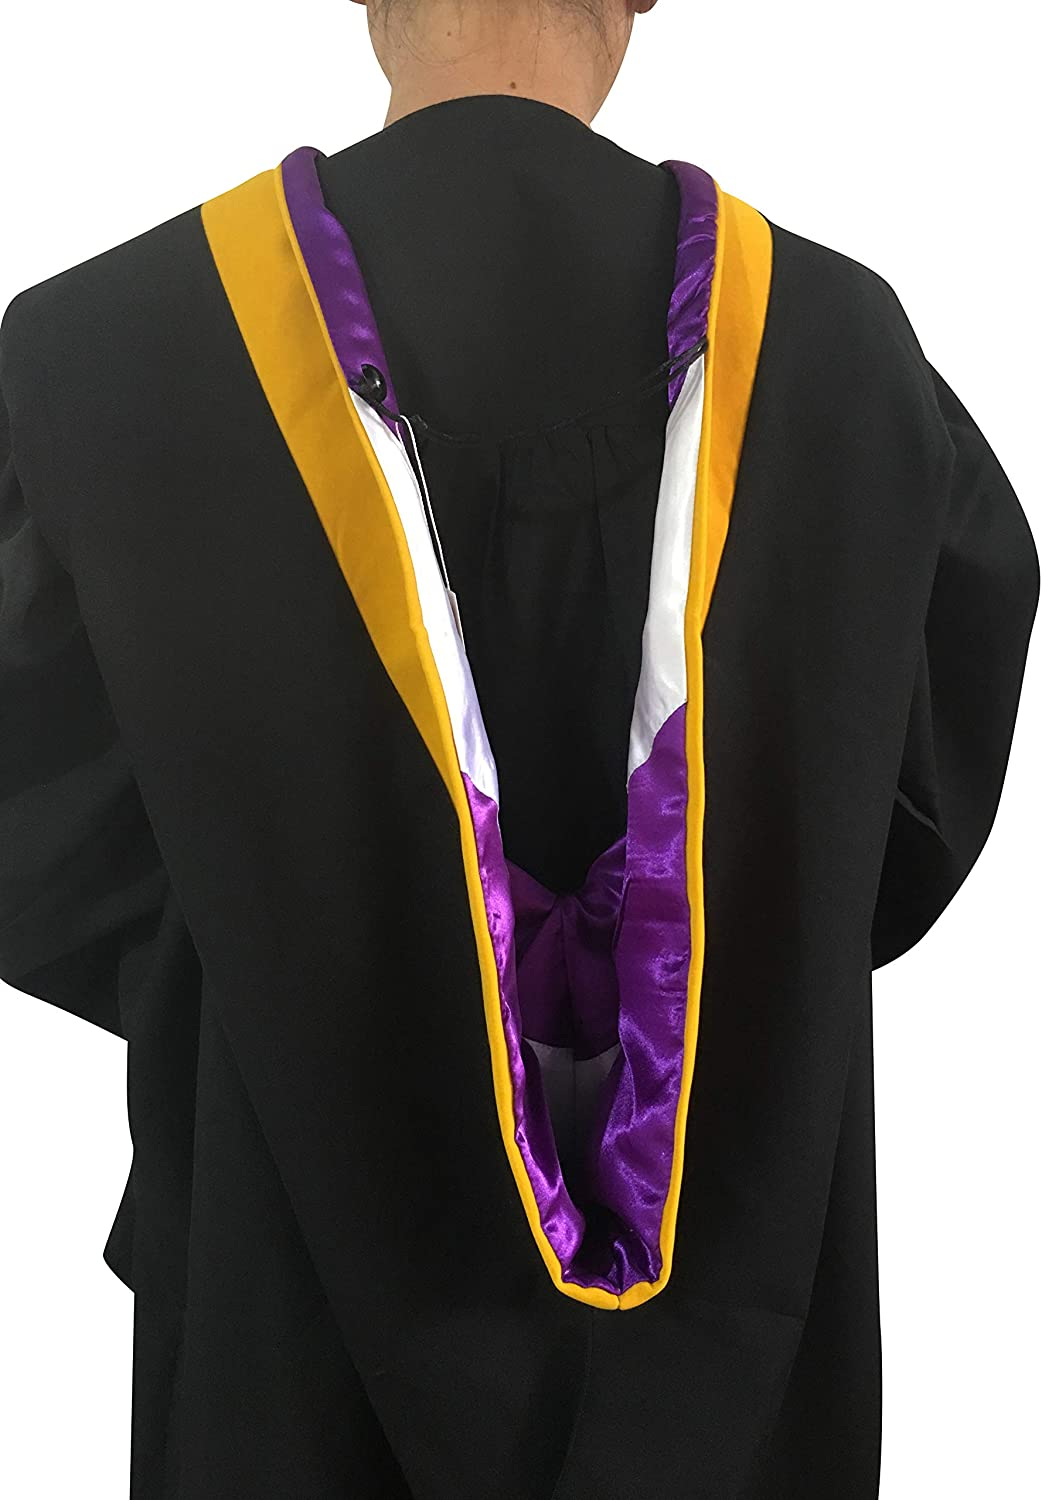 M.S. Math etc. Various Colors in Physics Cappe Diem Master Hood GOLDEN YELLOW: Master of Science